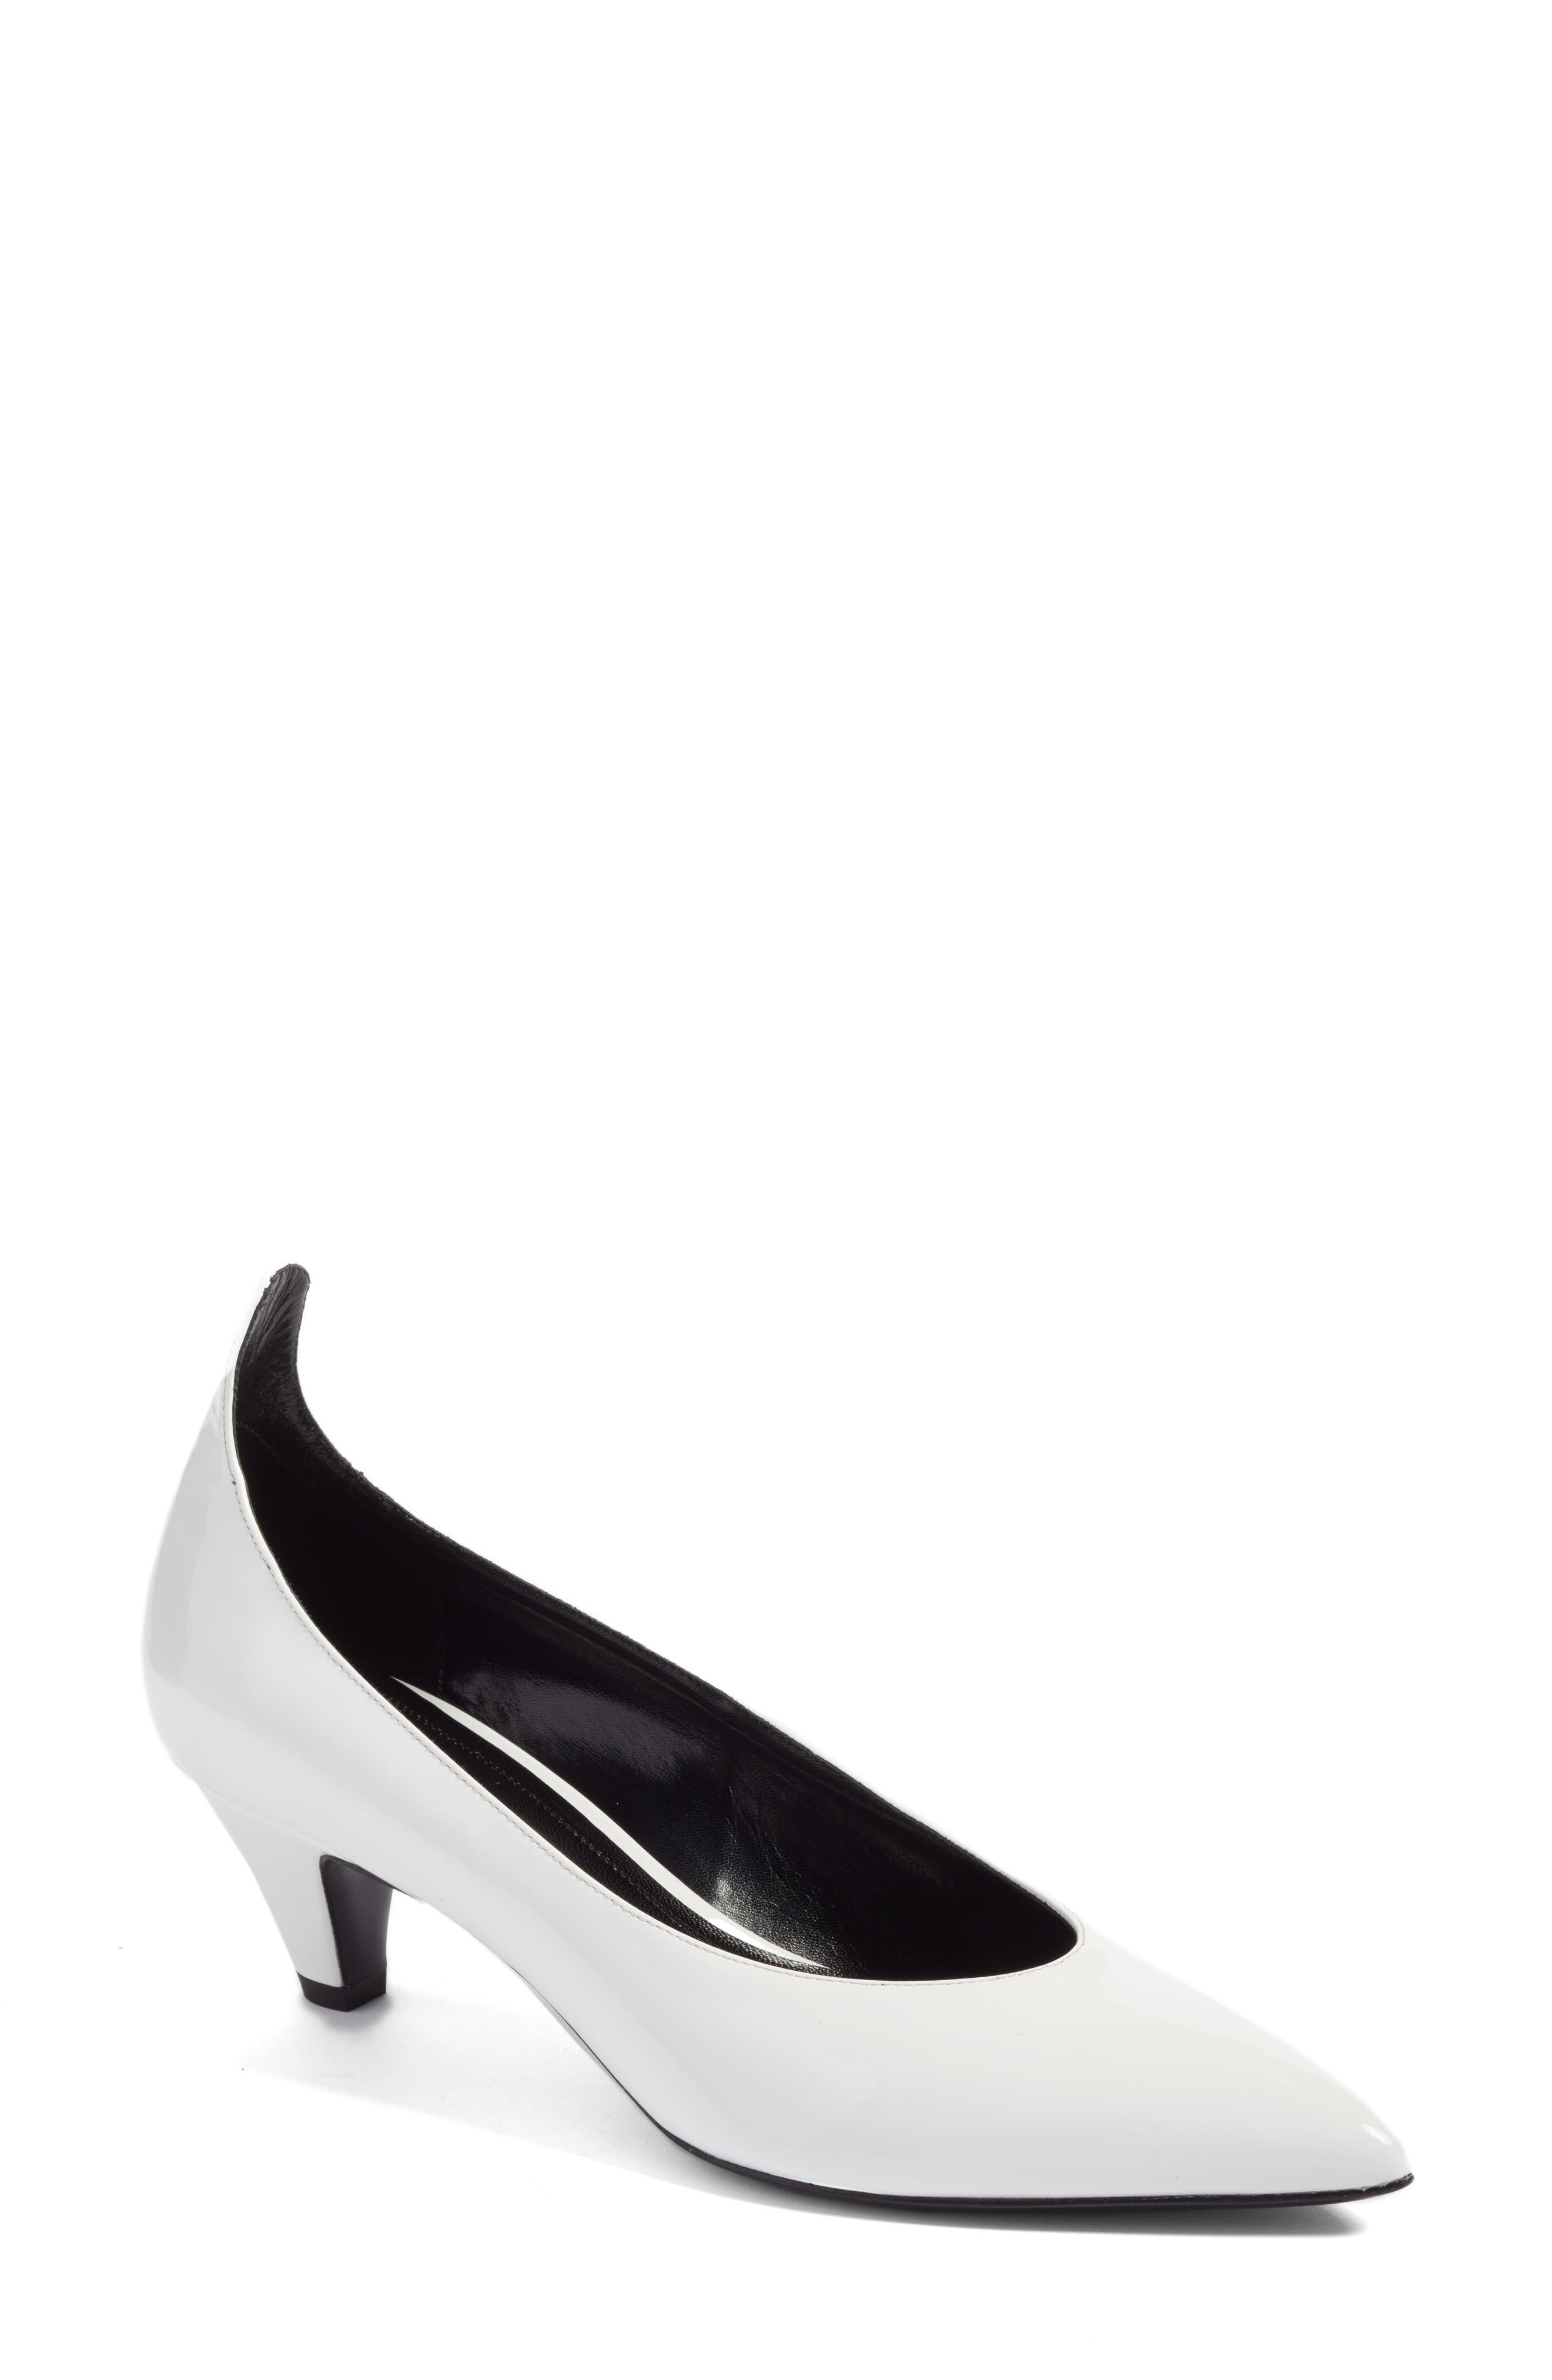 Kait Pointy Toe Pump,                         Main,                         color, White Patent